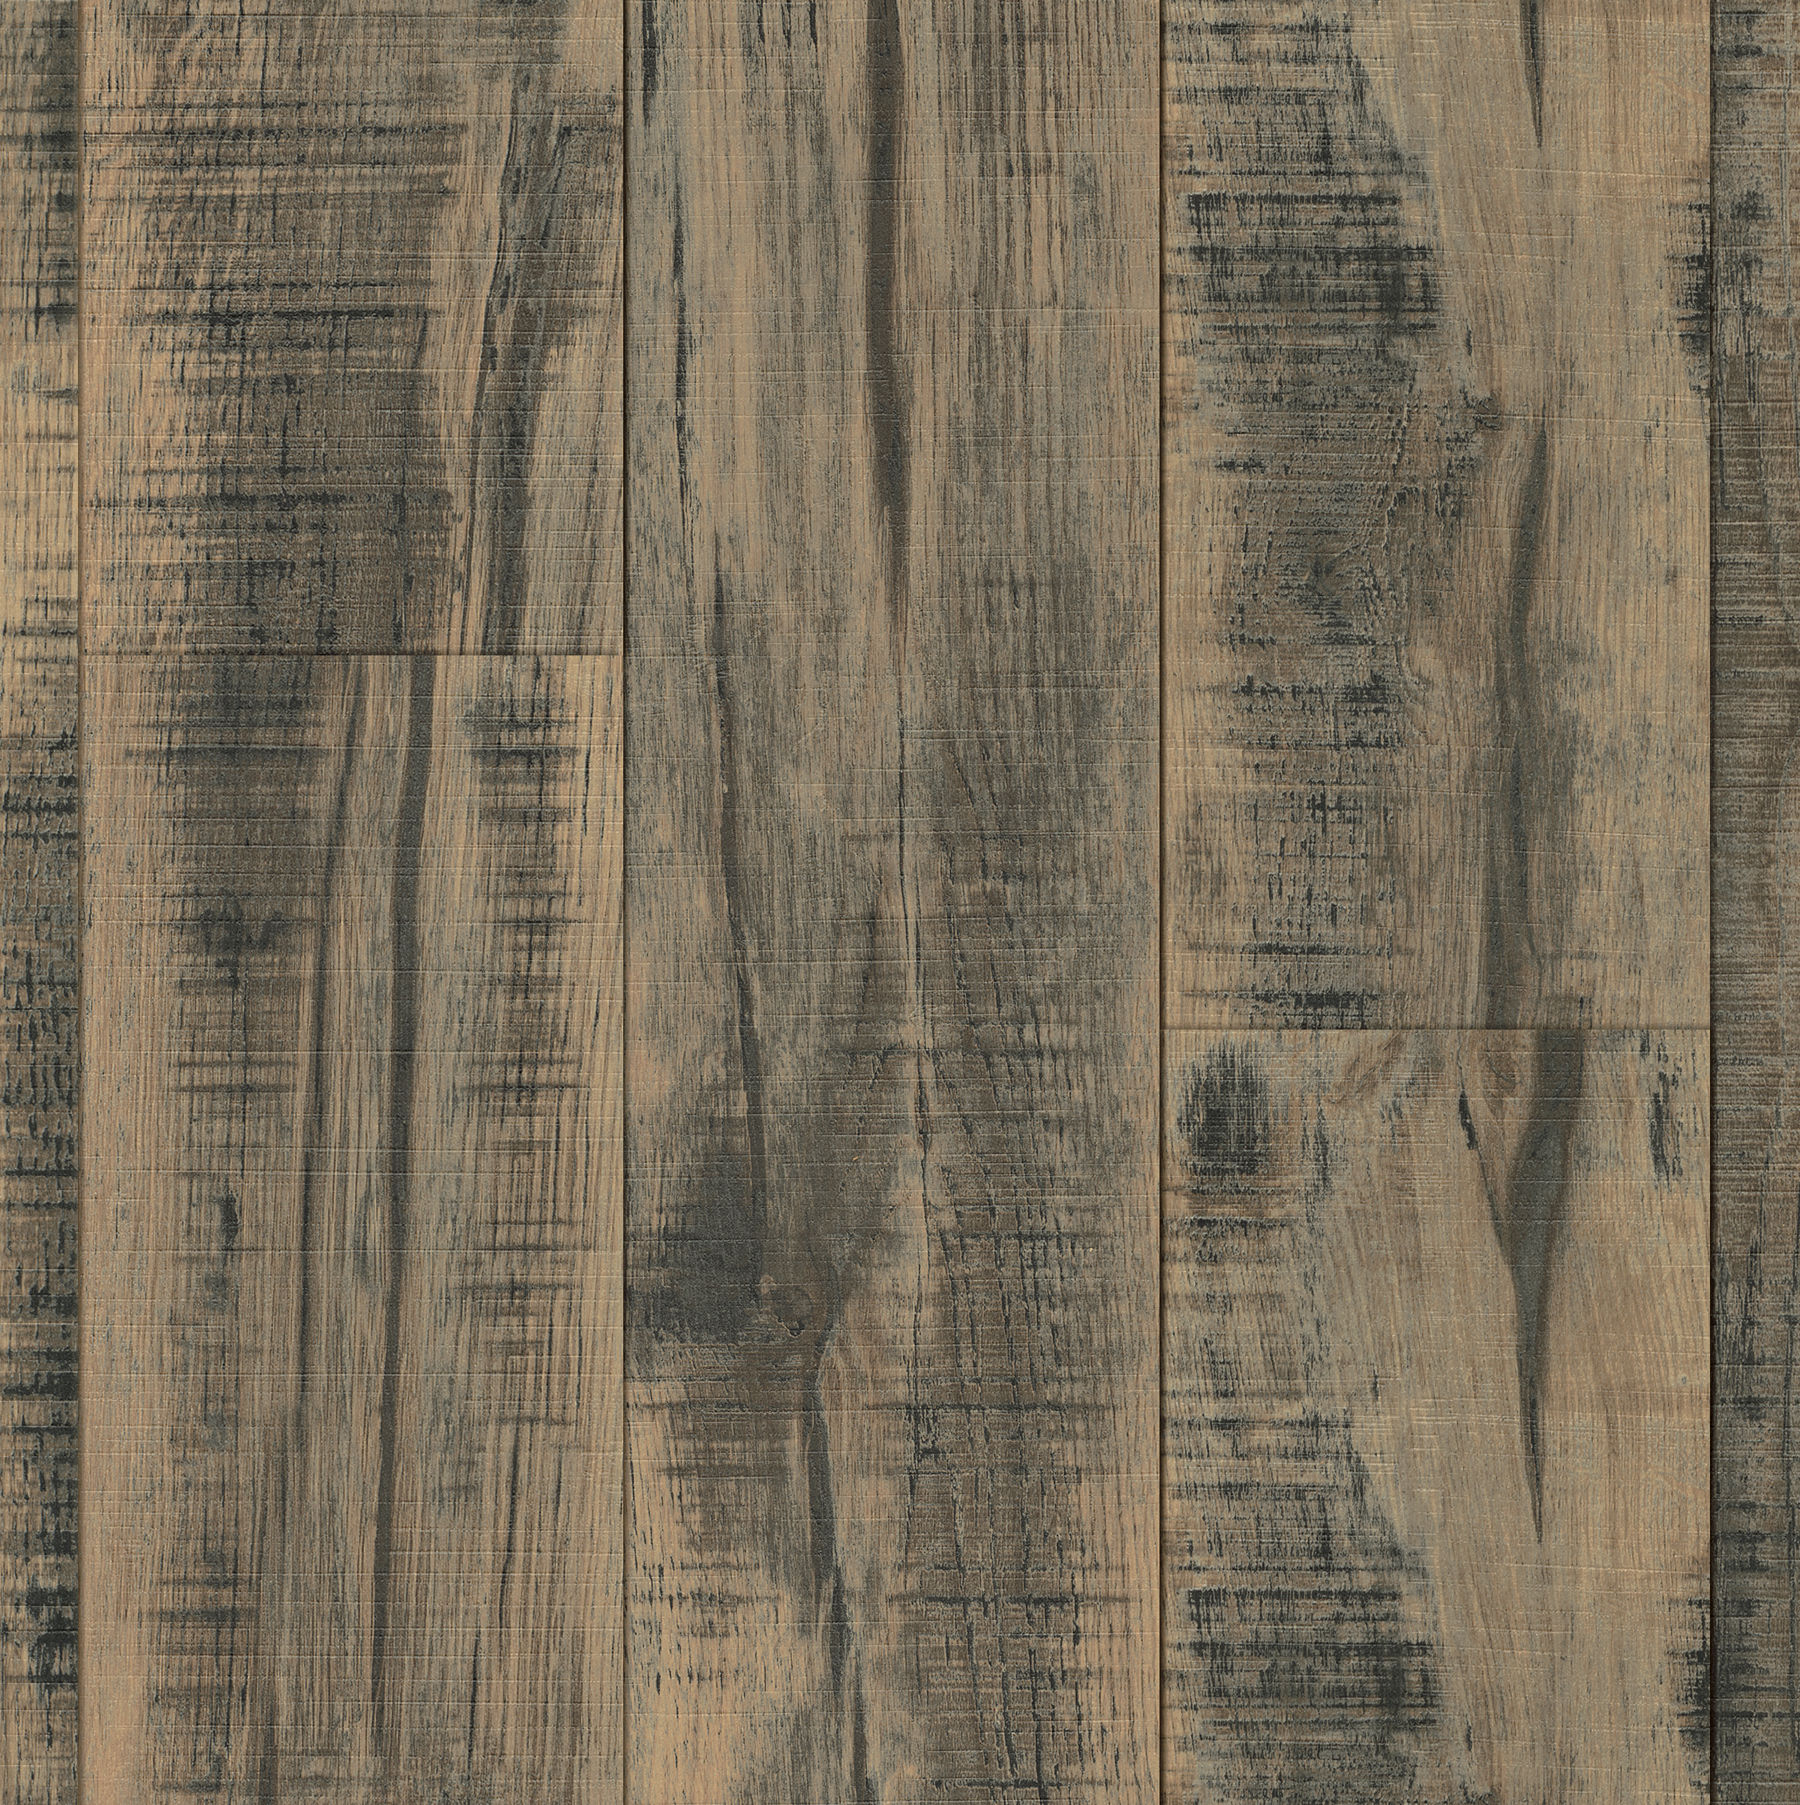 Armstrong Architectural Salvage Blackened Natural/Distressed Natural